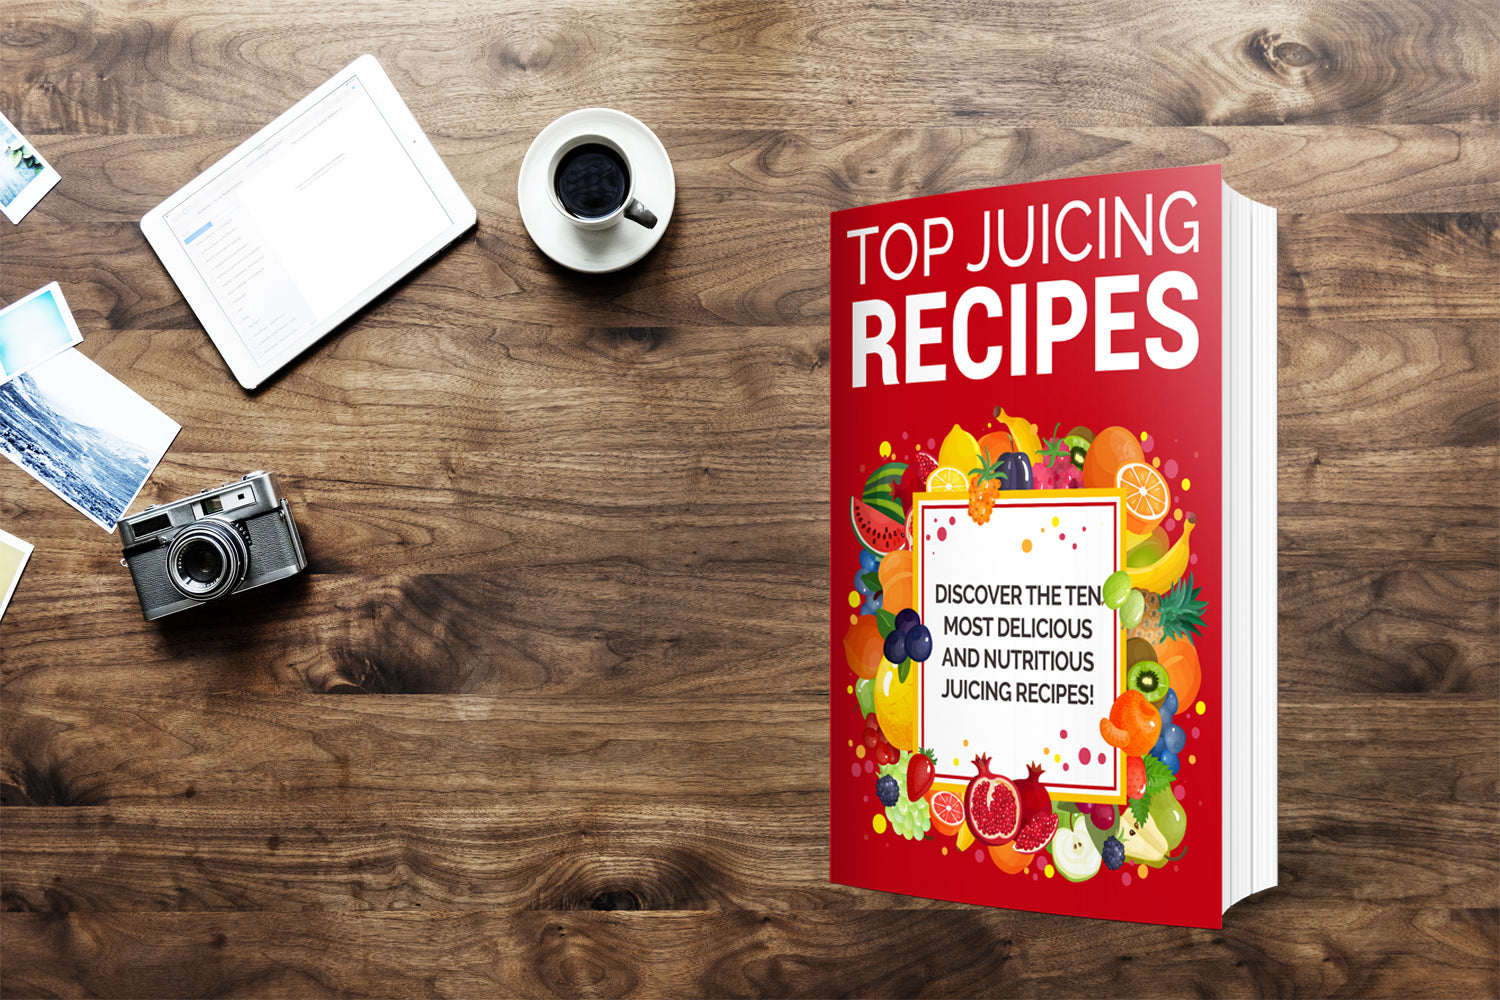 Top Juicing Recipes – Discover The Ten Most Delicious And Nutritious Juicing Recipes!